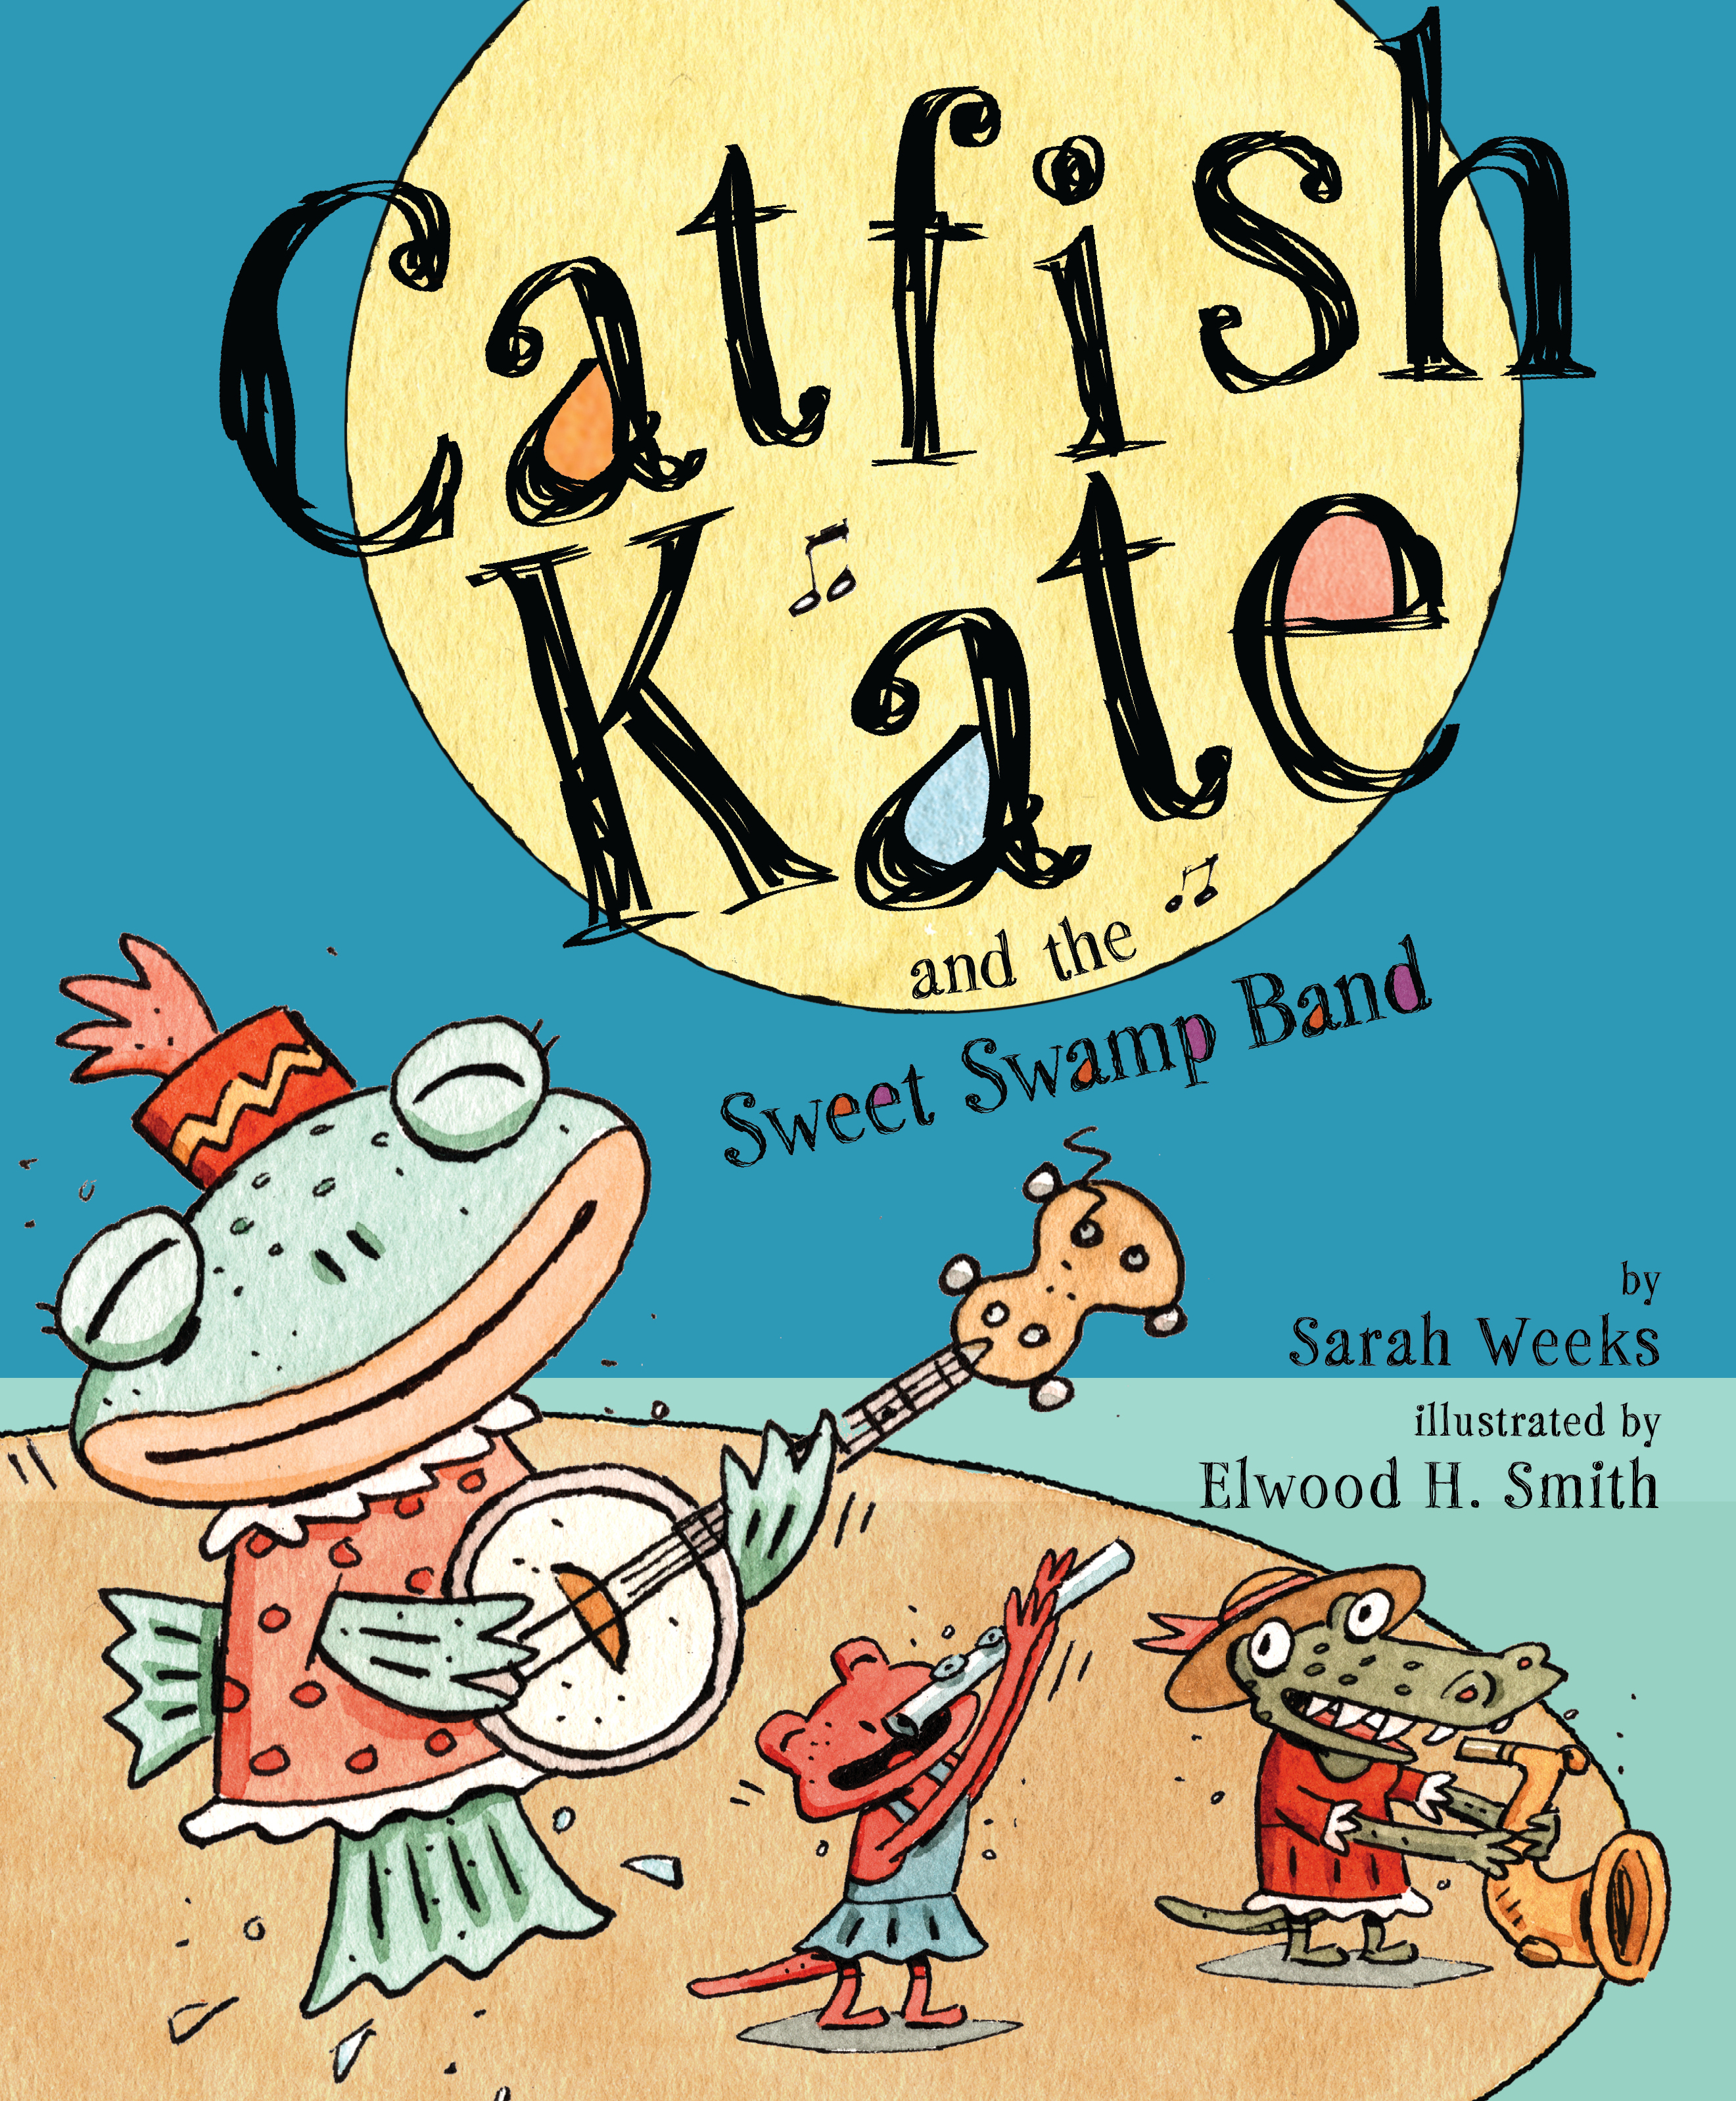 Book Cover Image (jpg): Catfish Kate And The Sweet Swamp Band